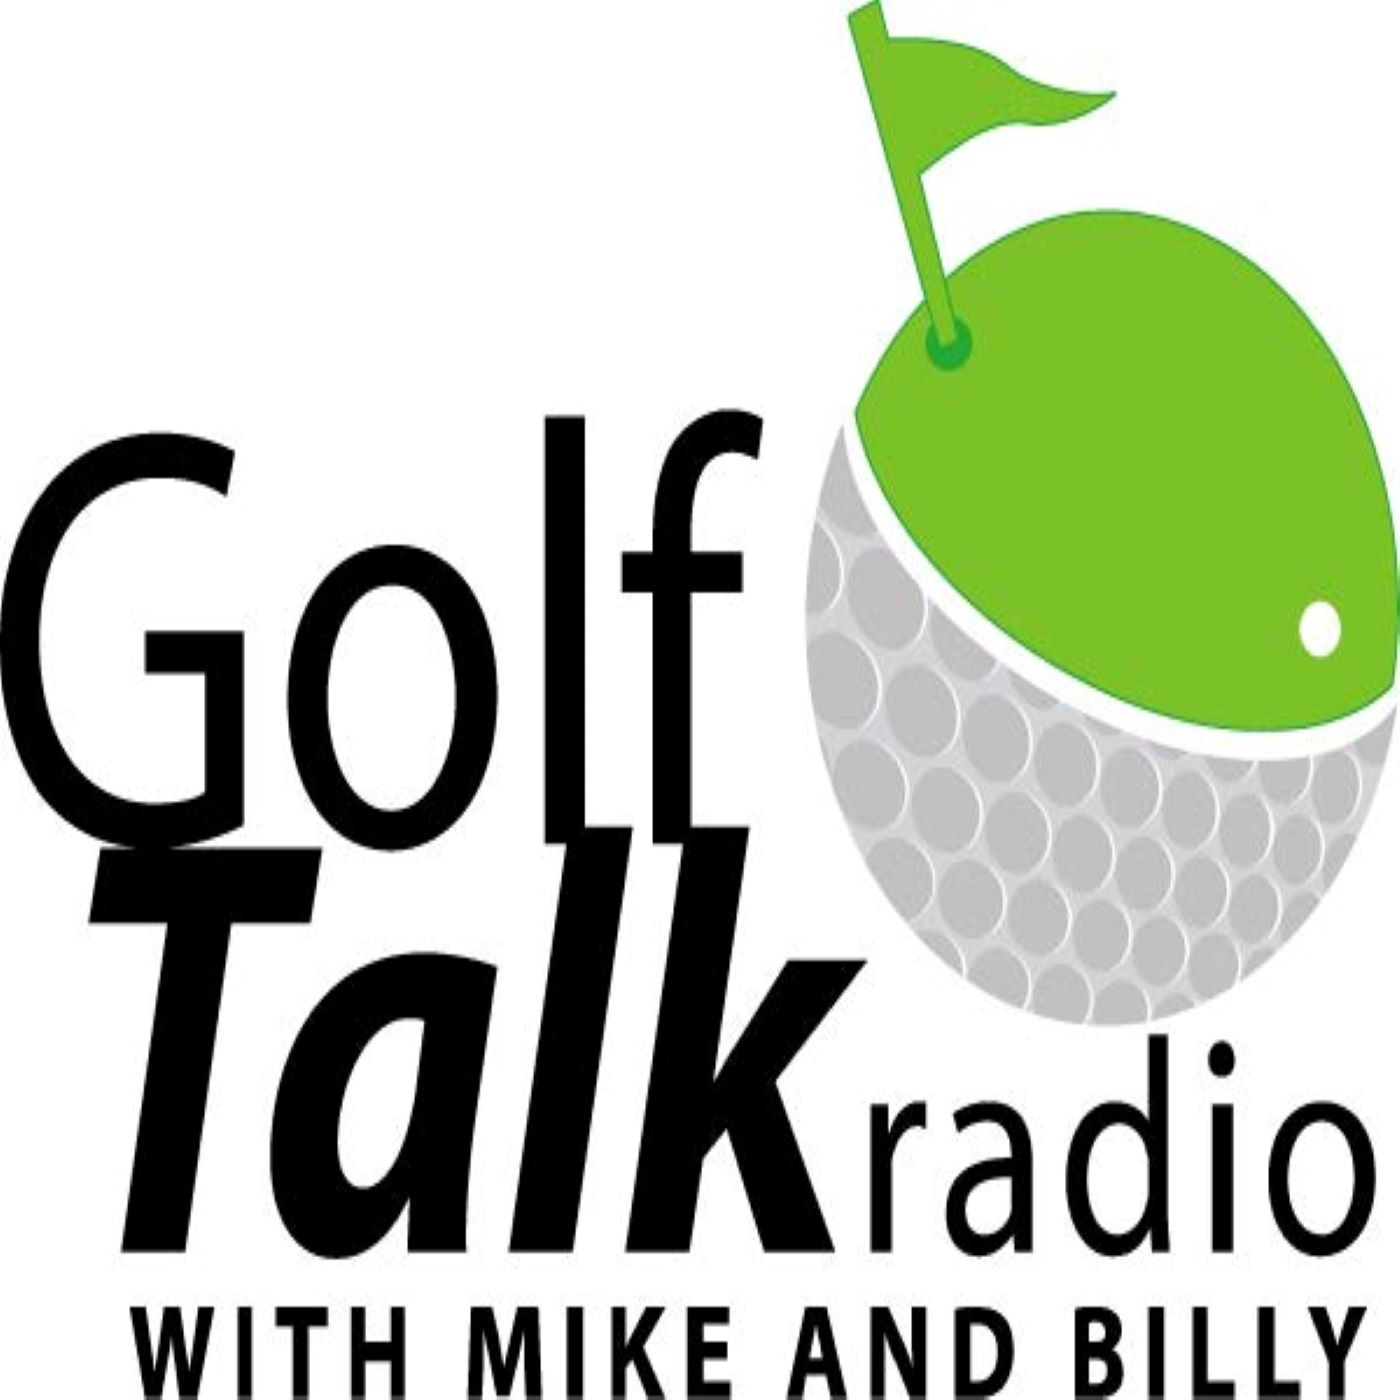 Golf Talk Radio with Mike & Billy Podcasts show art